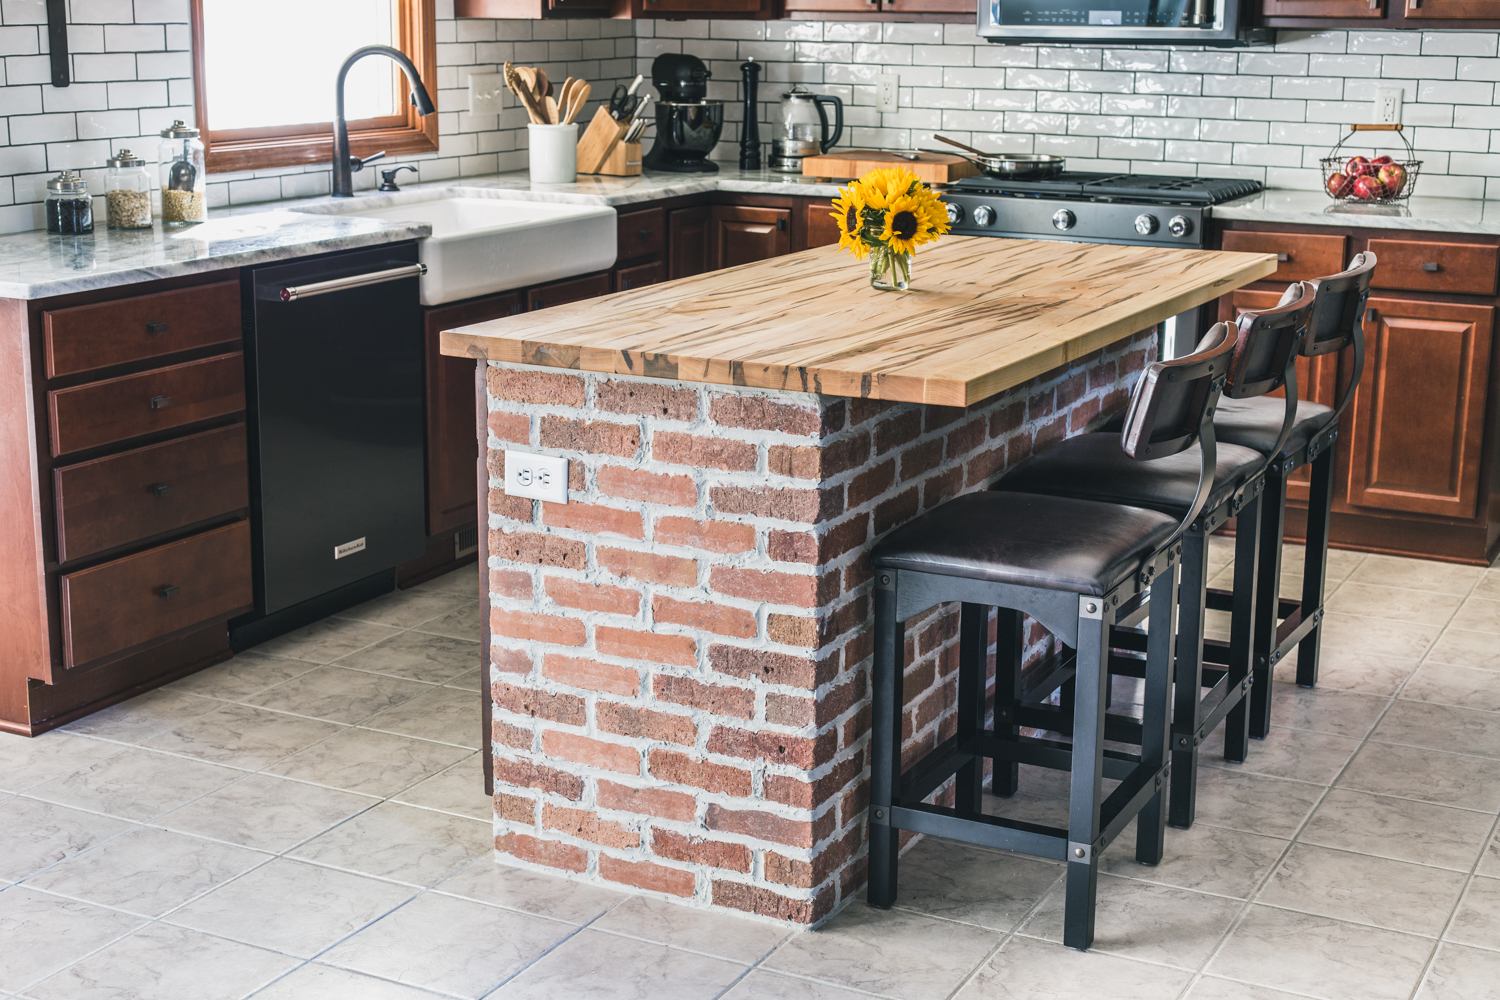 Bon Kitchen Island With Exposed Brick And Wooden Countertop